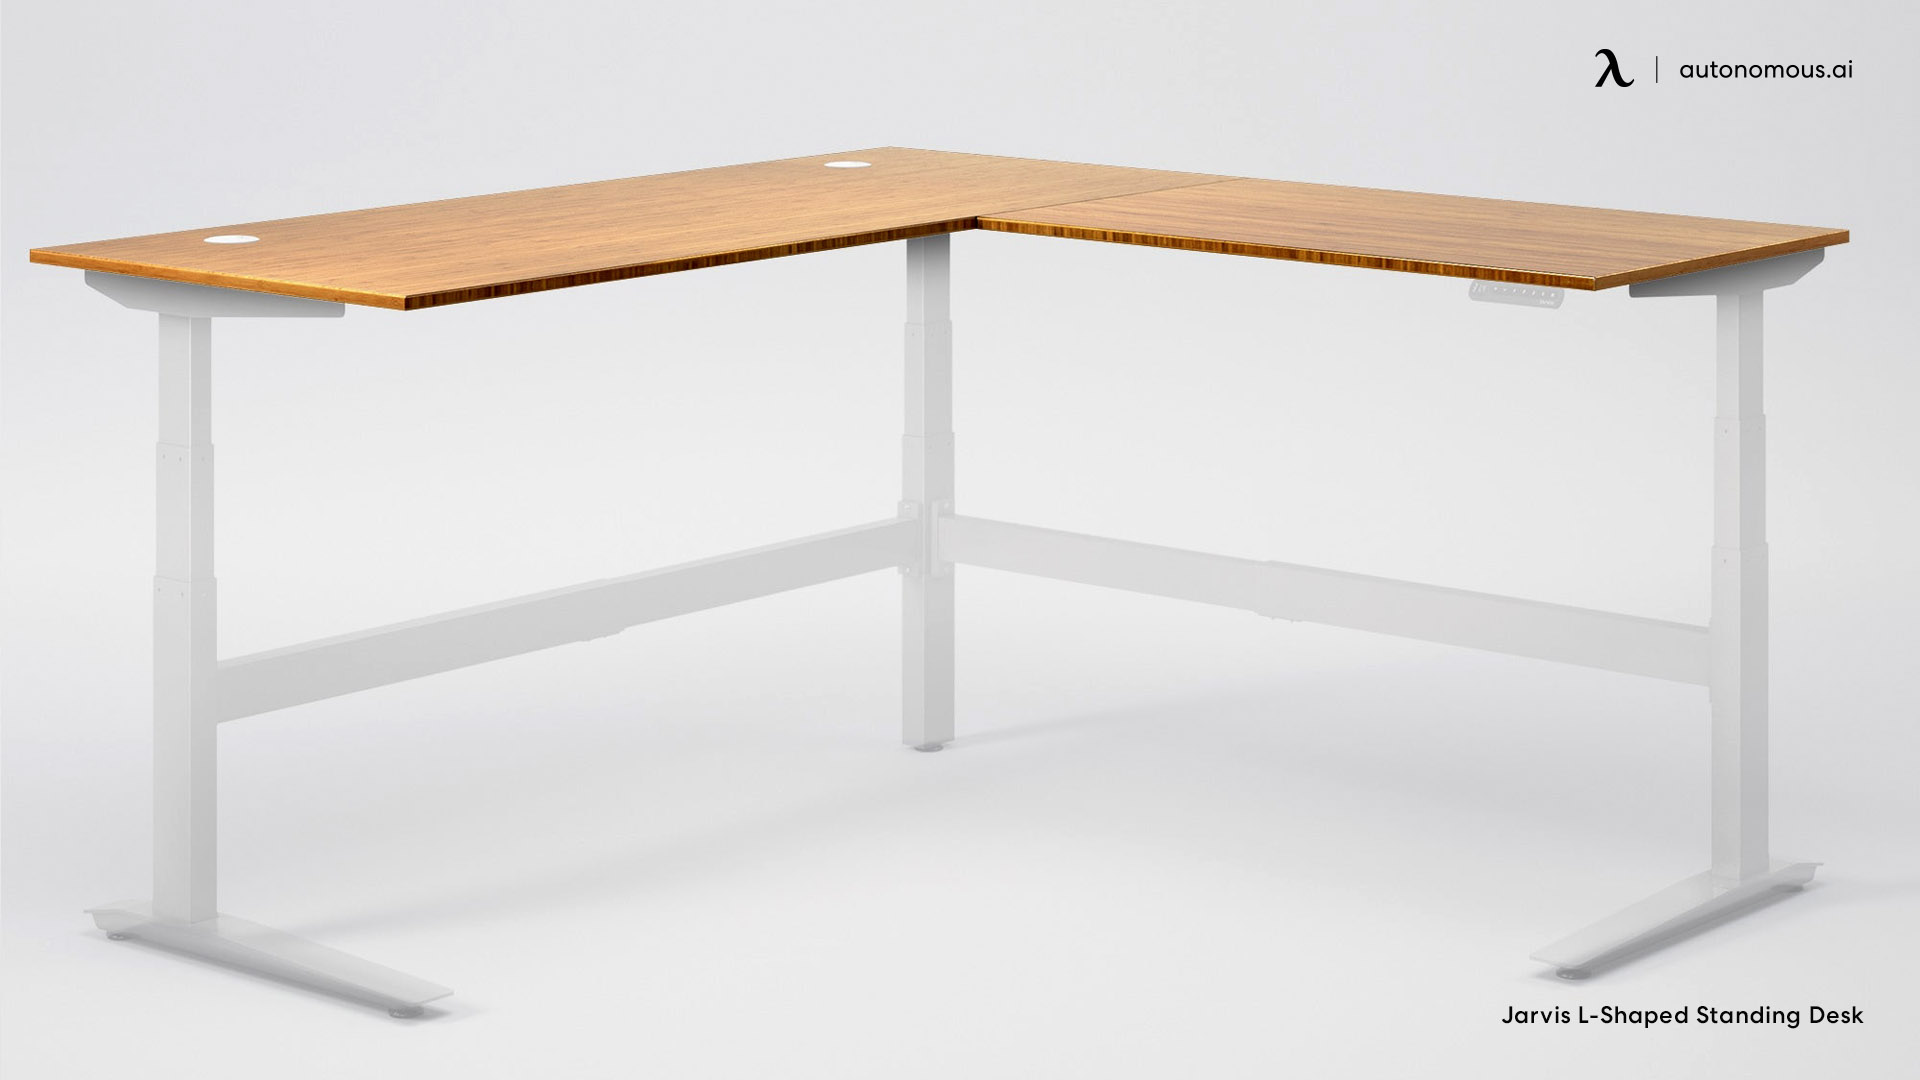 L-Shaped Standing Desk by Jarvis